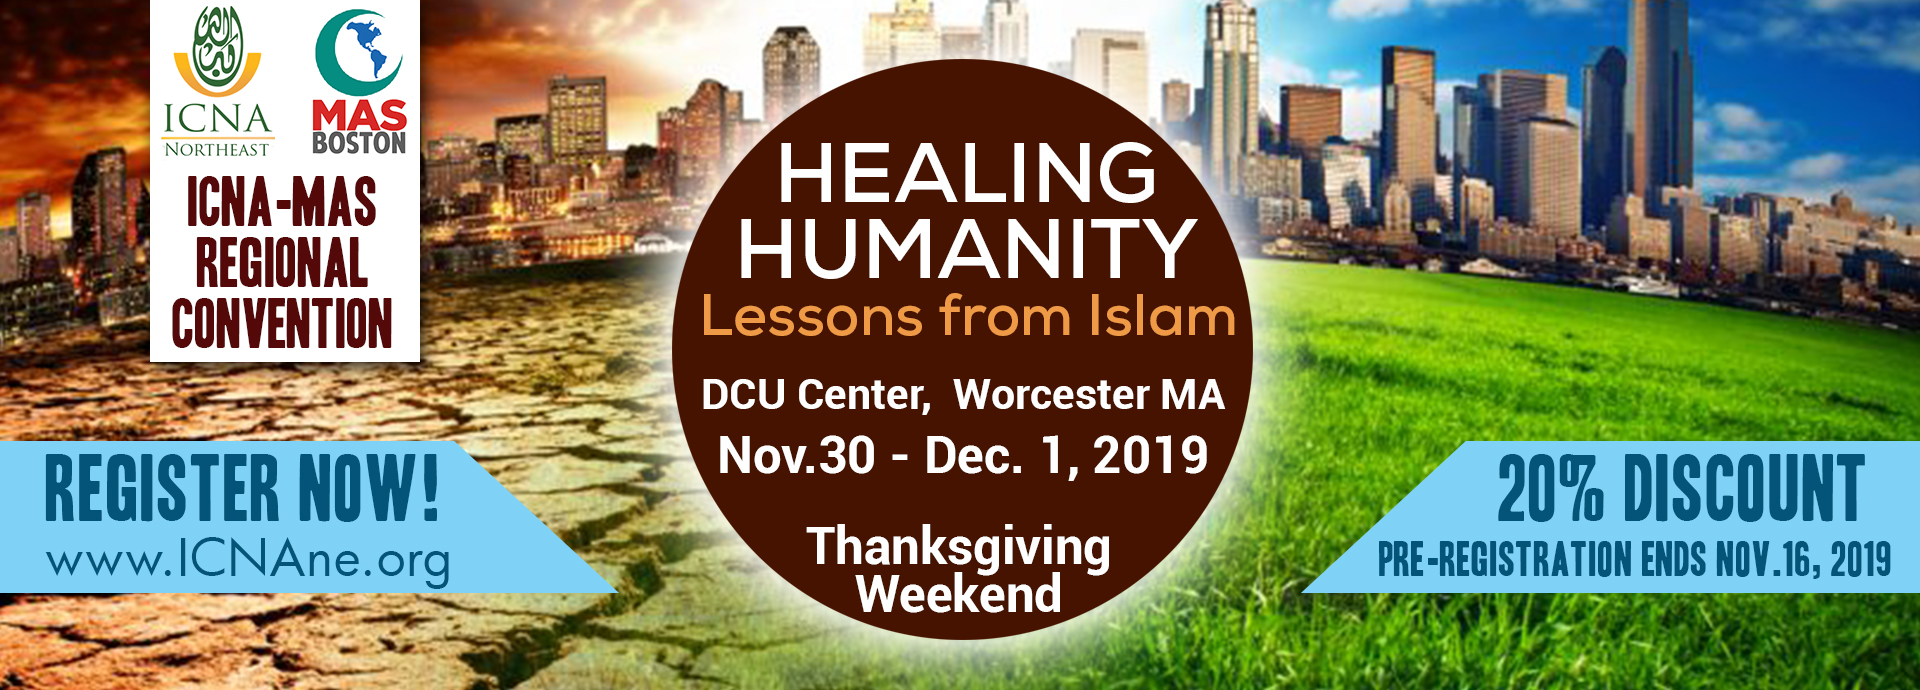 ICNA-MAS ne Convention 2019